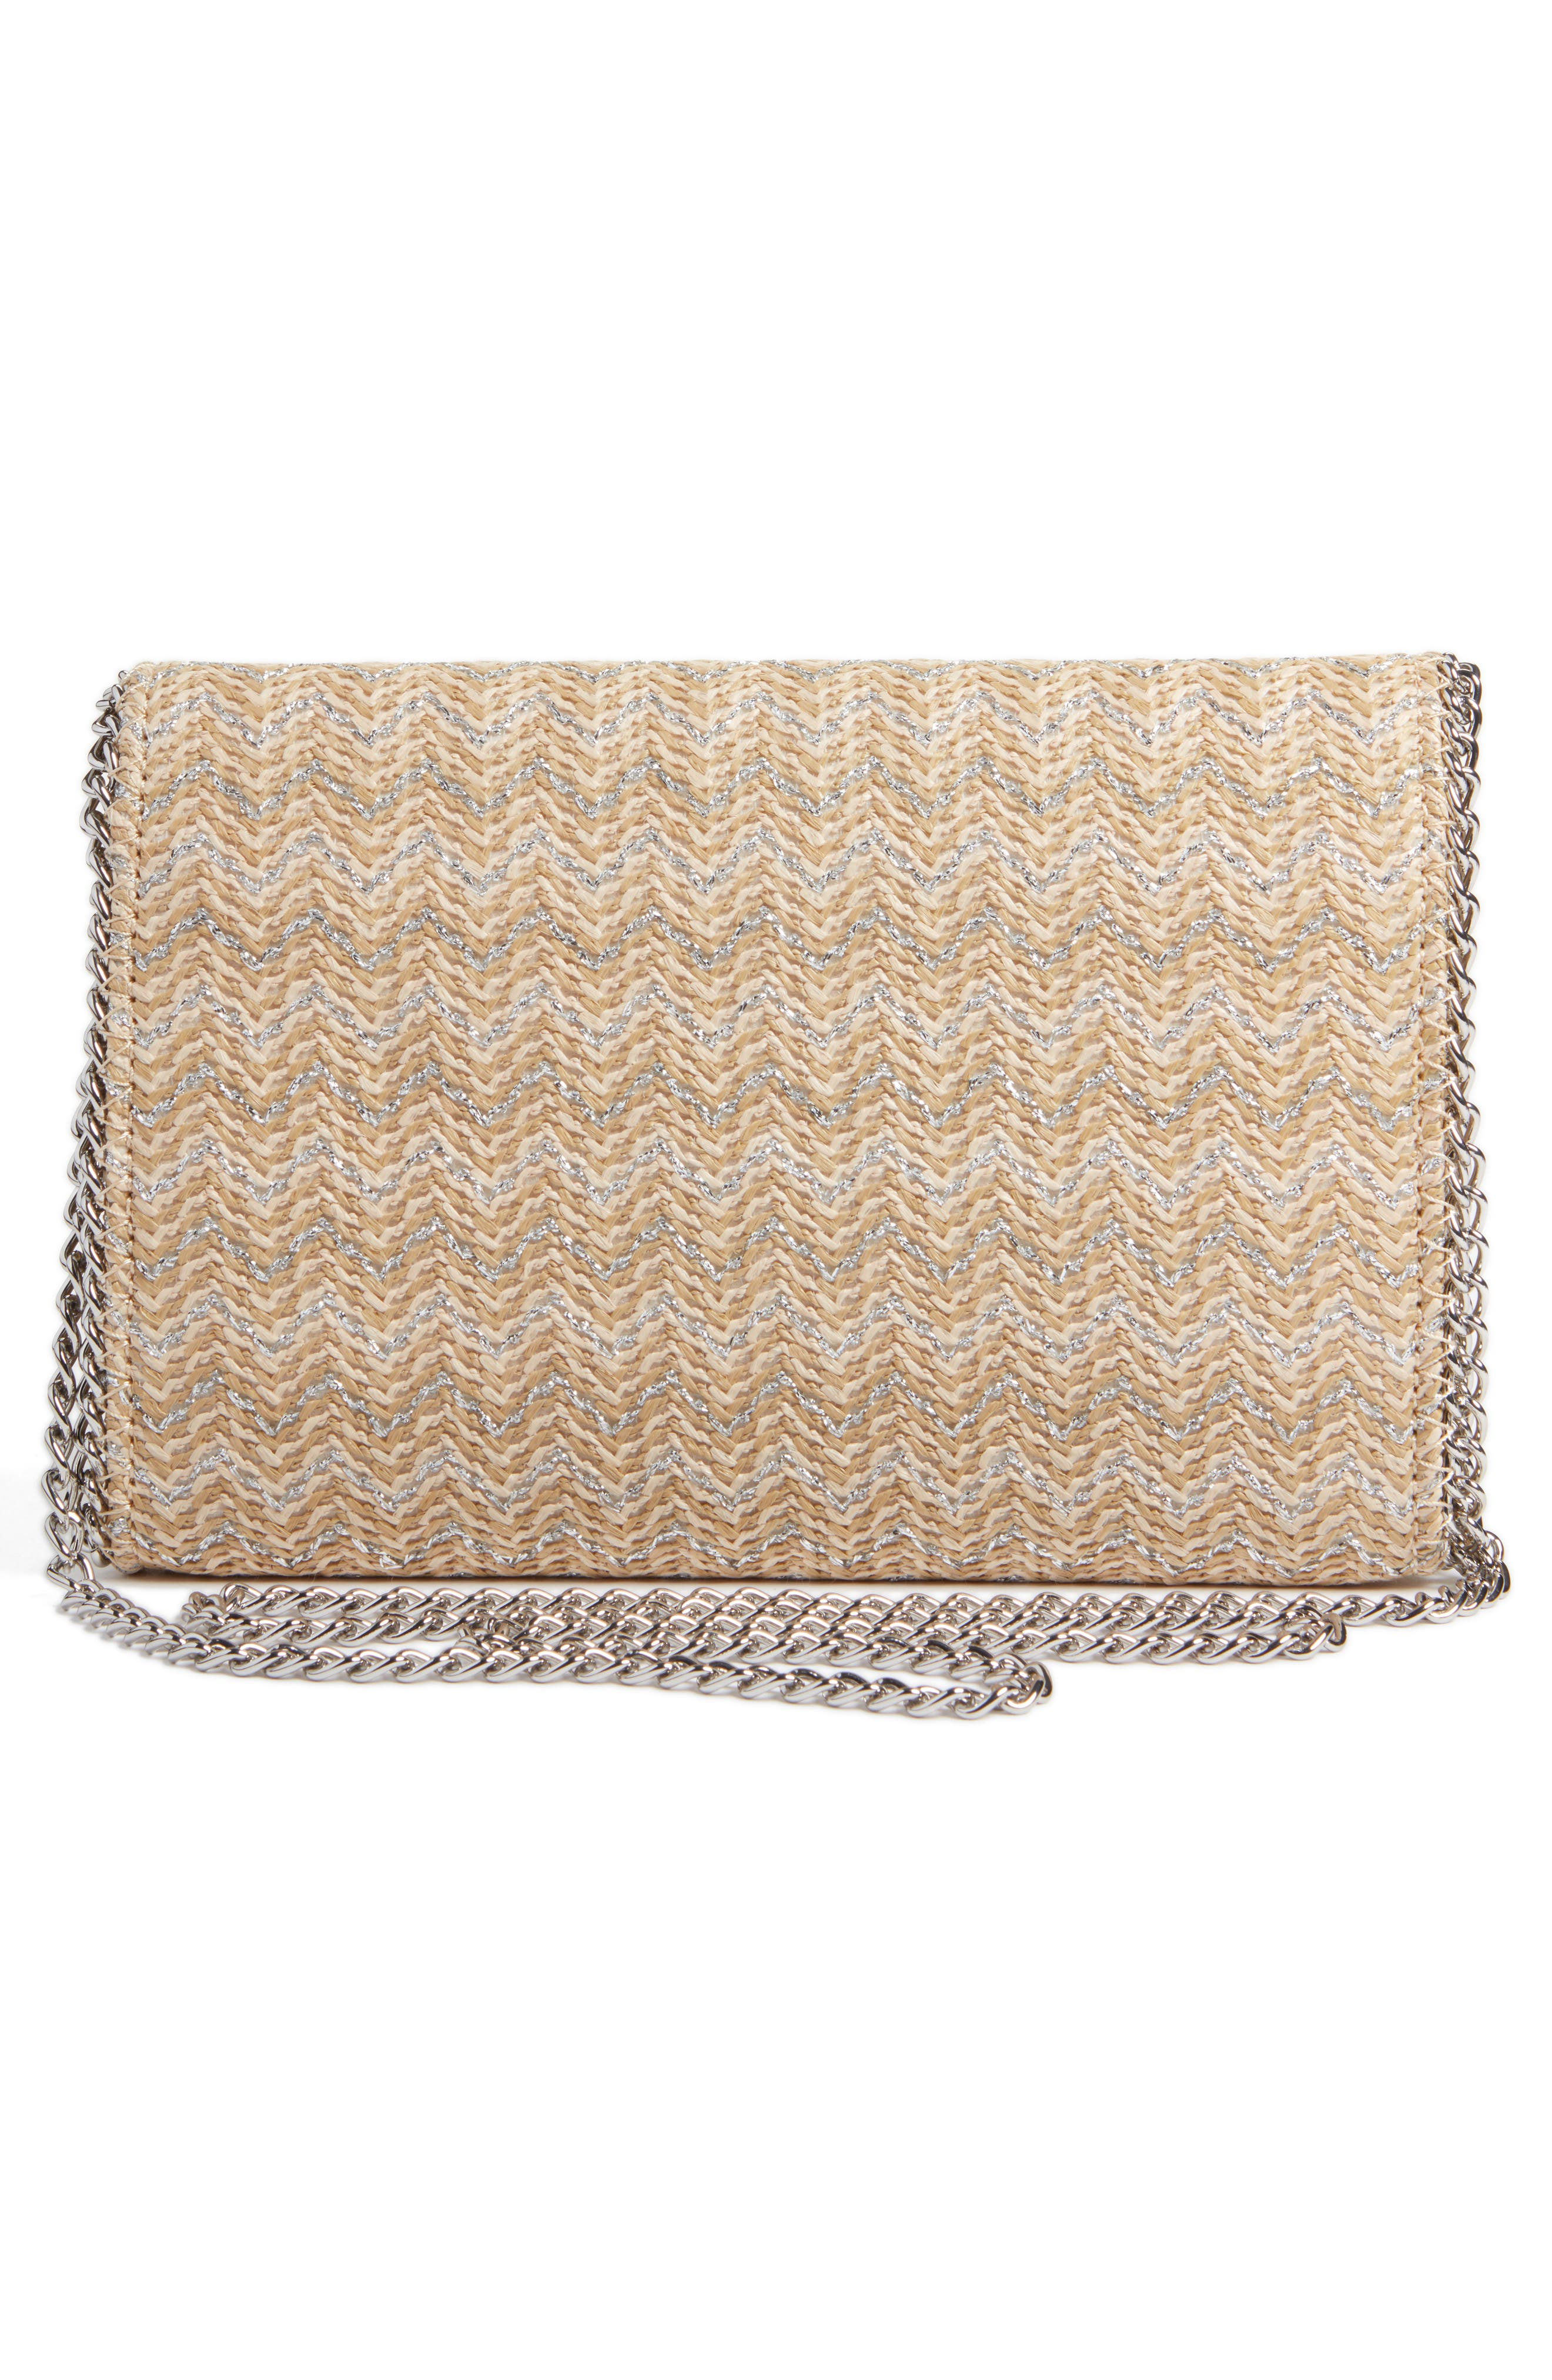 Stripe Straw Convertible Clutch,                             Alternate thumbnail 3, color,                             040